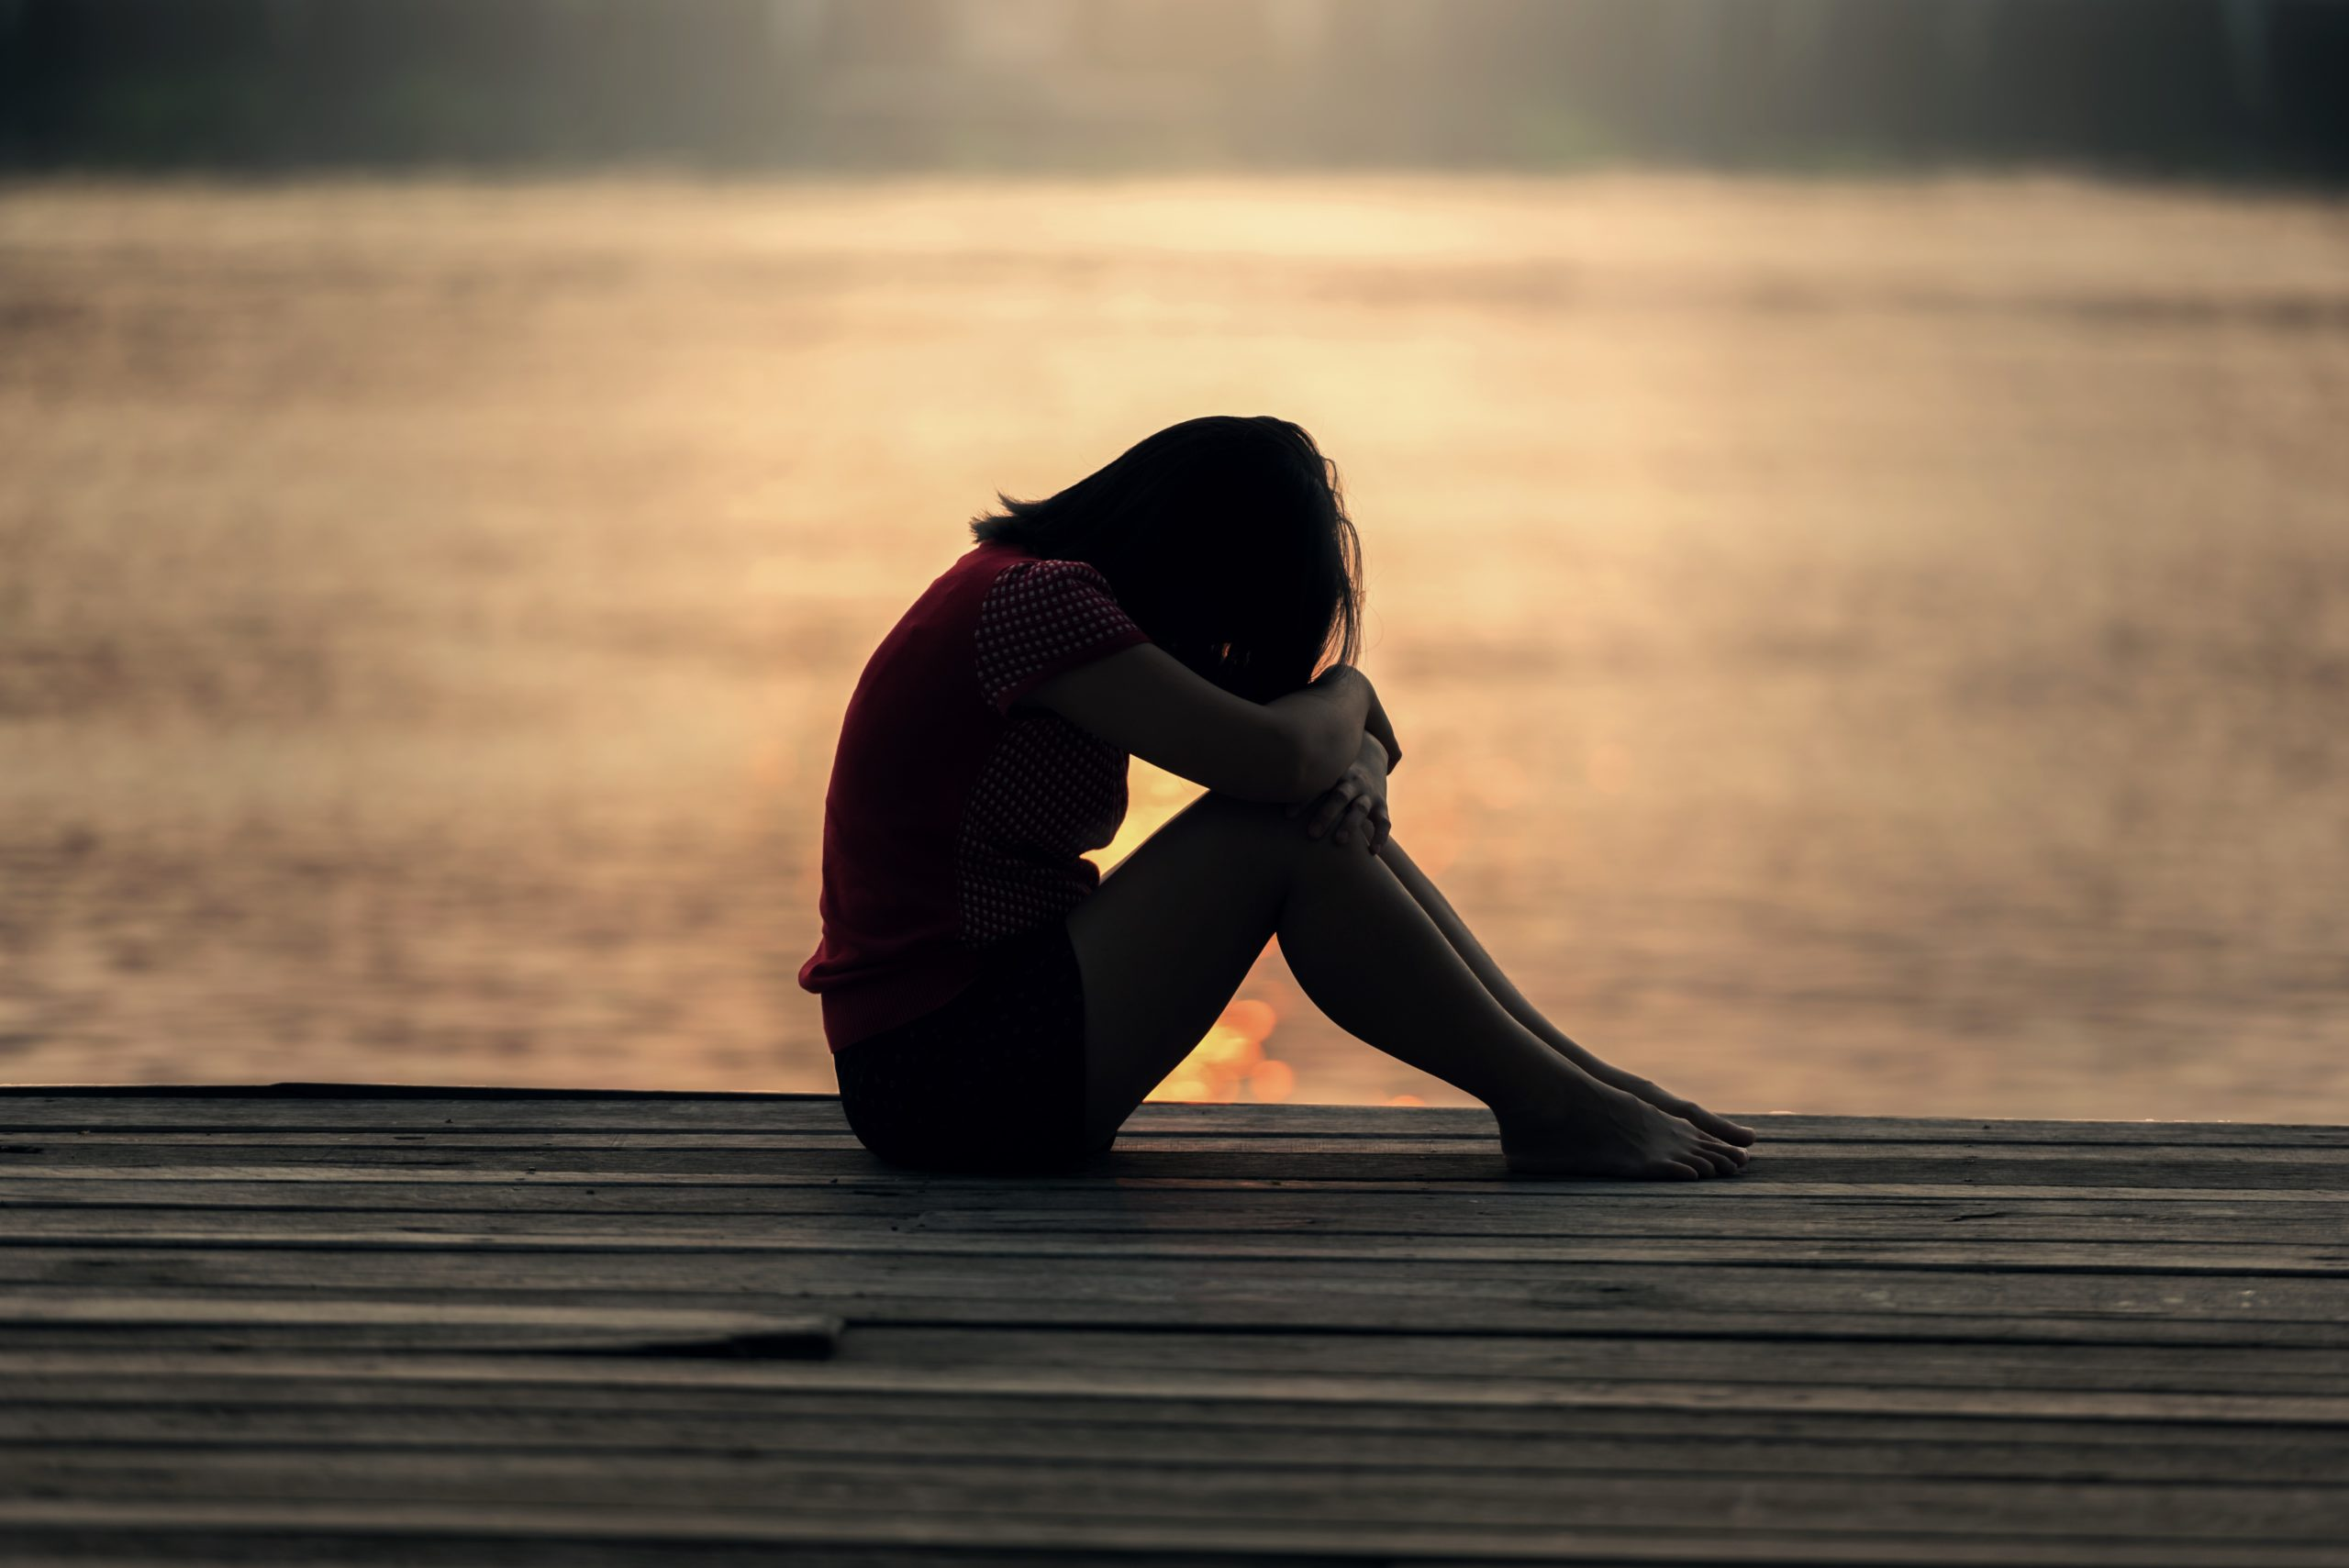 A woman sits on a wooden deck next to the ocean, back lit by the sunrise. She is hunched over her knees as if she is crying.